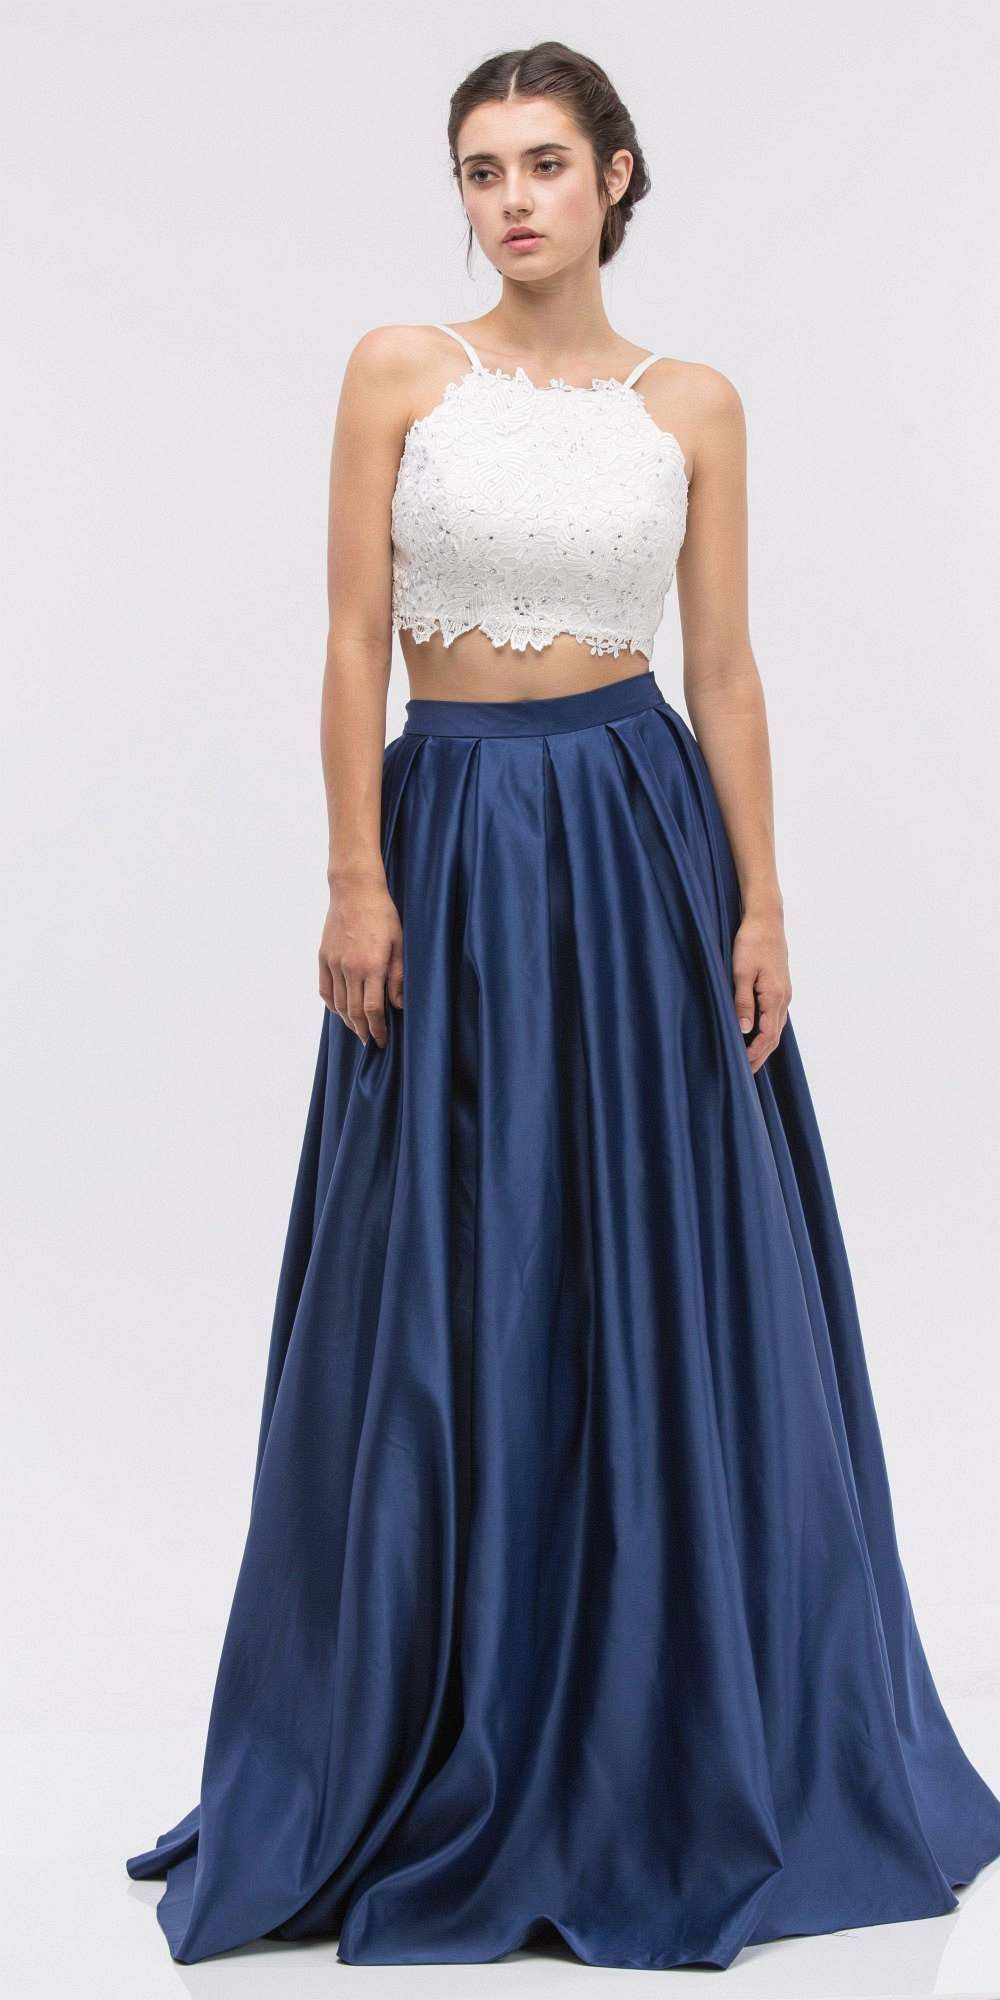 Two-Piece Long Prom Dress Lace Crop Top and Satin Skirt Navy Blue ...